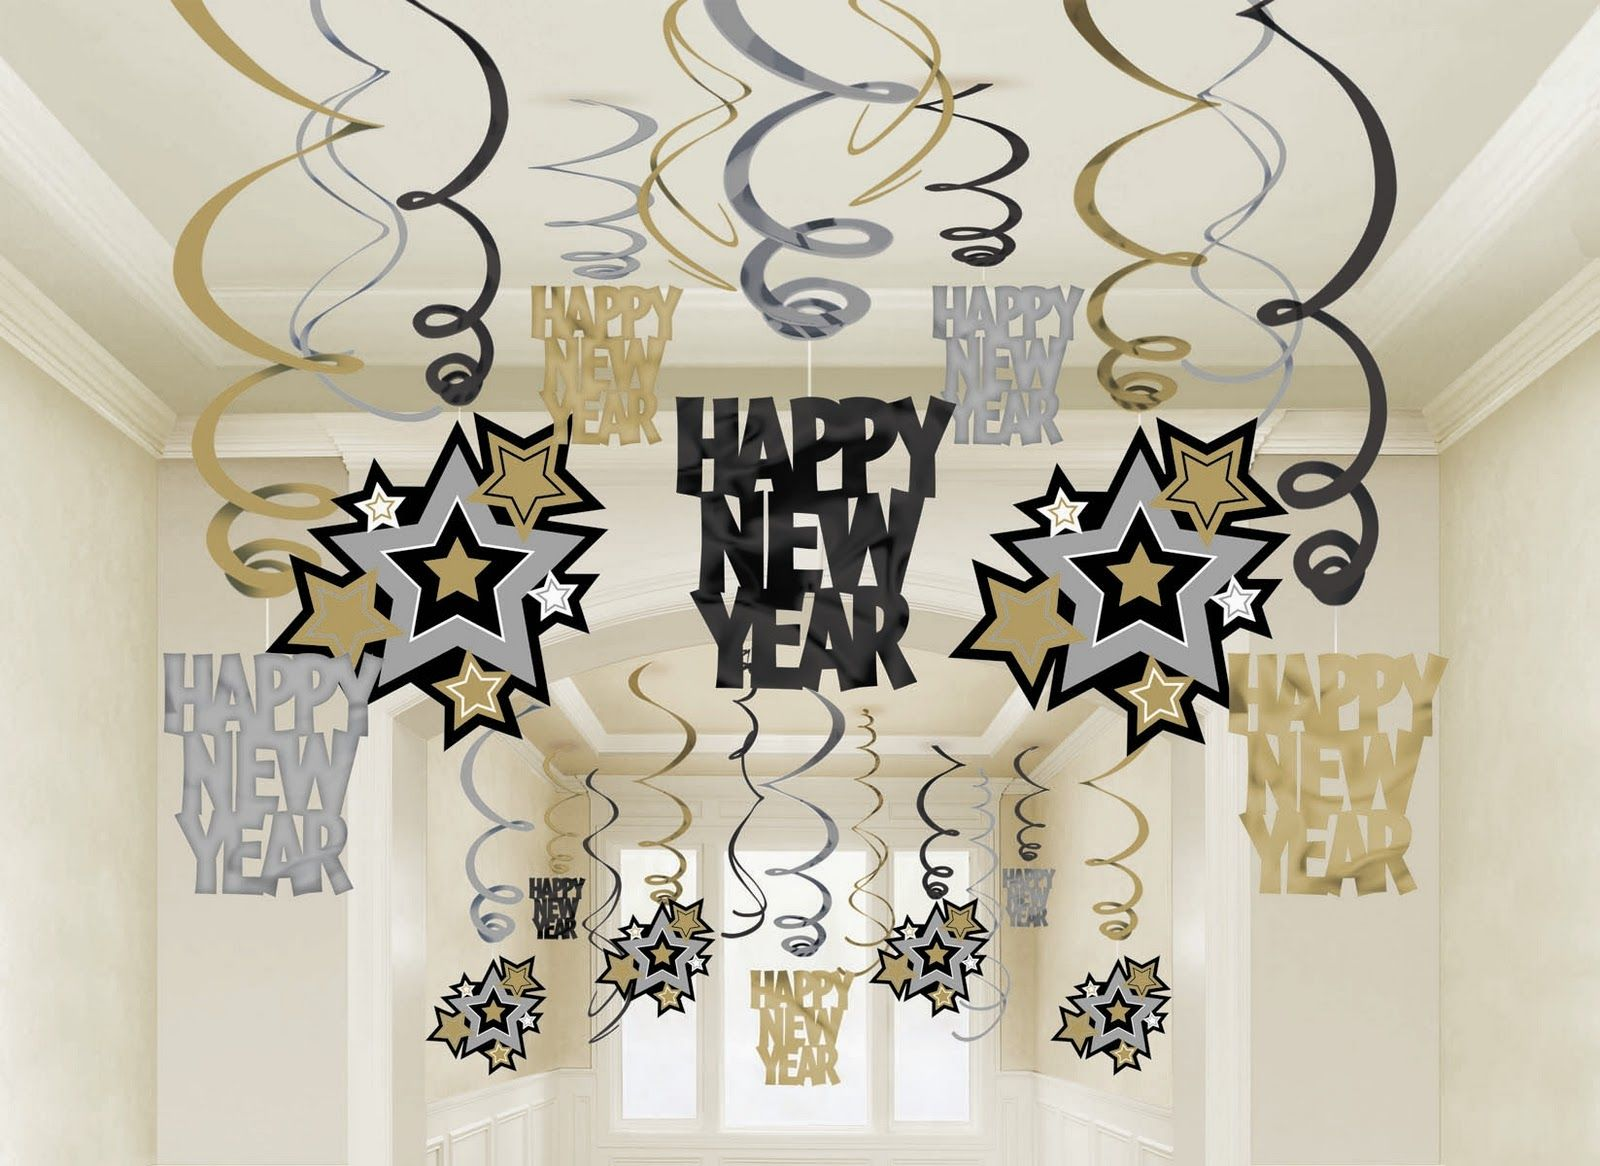 Uncategorized Happy New Year Decoration Ideas google image result for http1 bp blogspot com nuubrxzerga i love this color scheme our new year party decornew years hanging swirl decorations